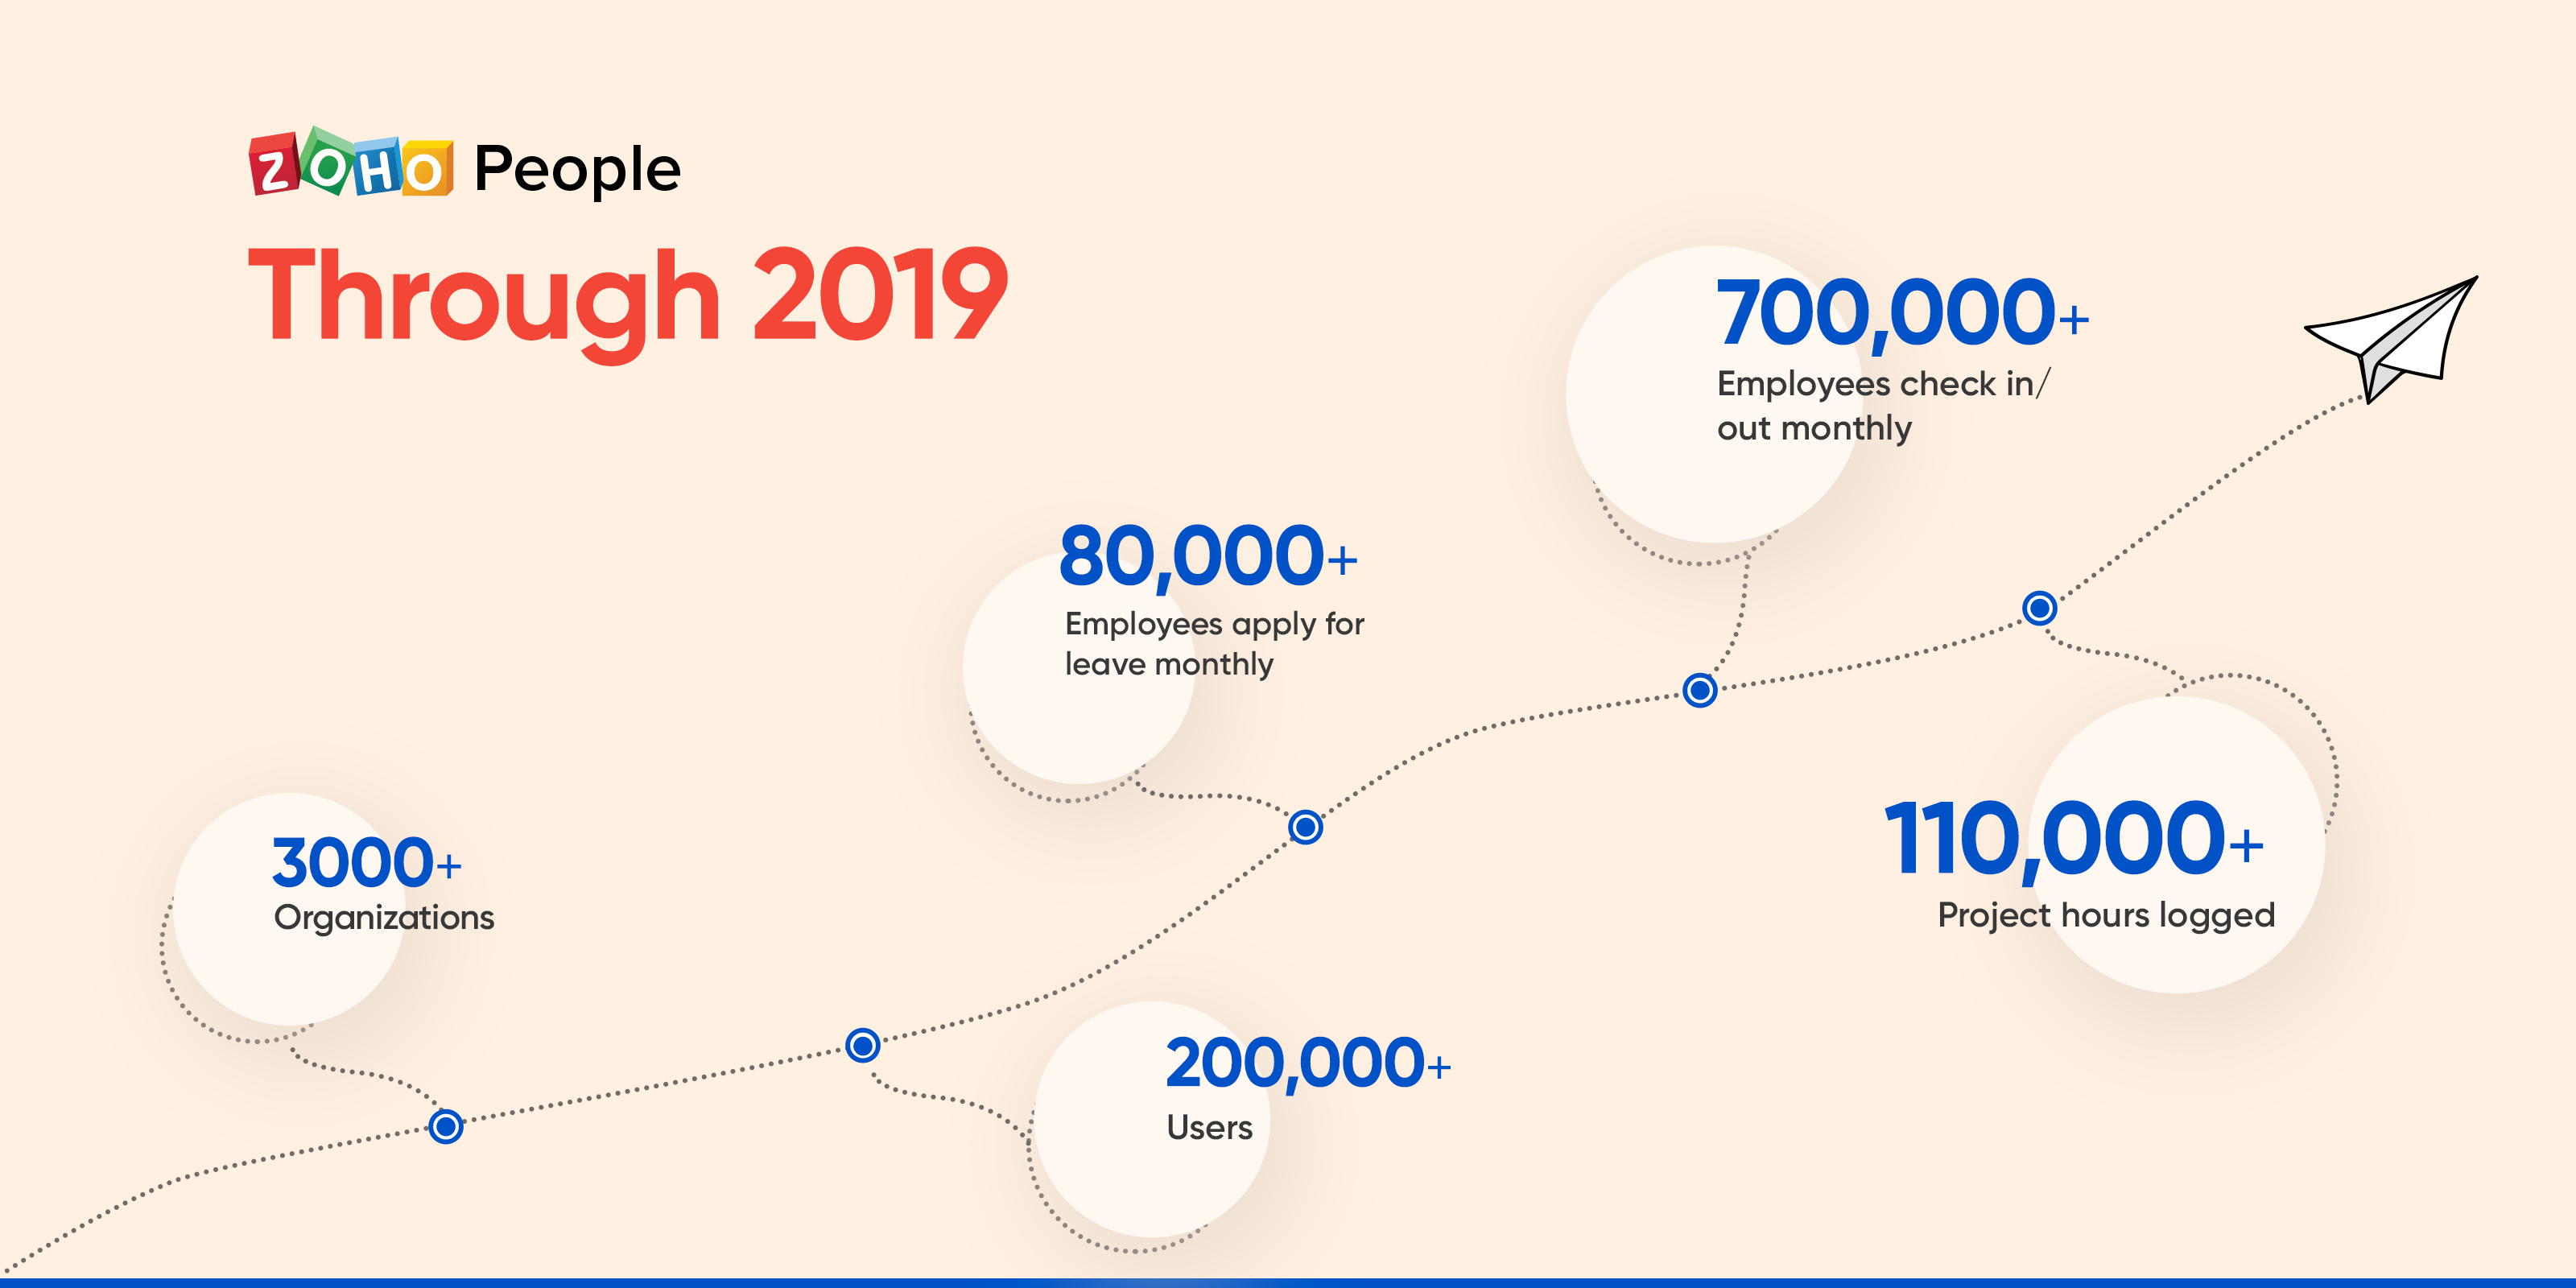 Year in Review: Zoho People in 2019